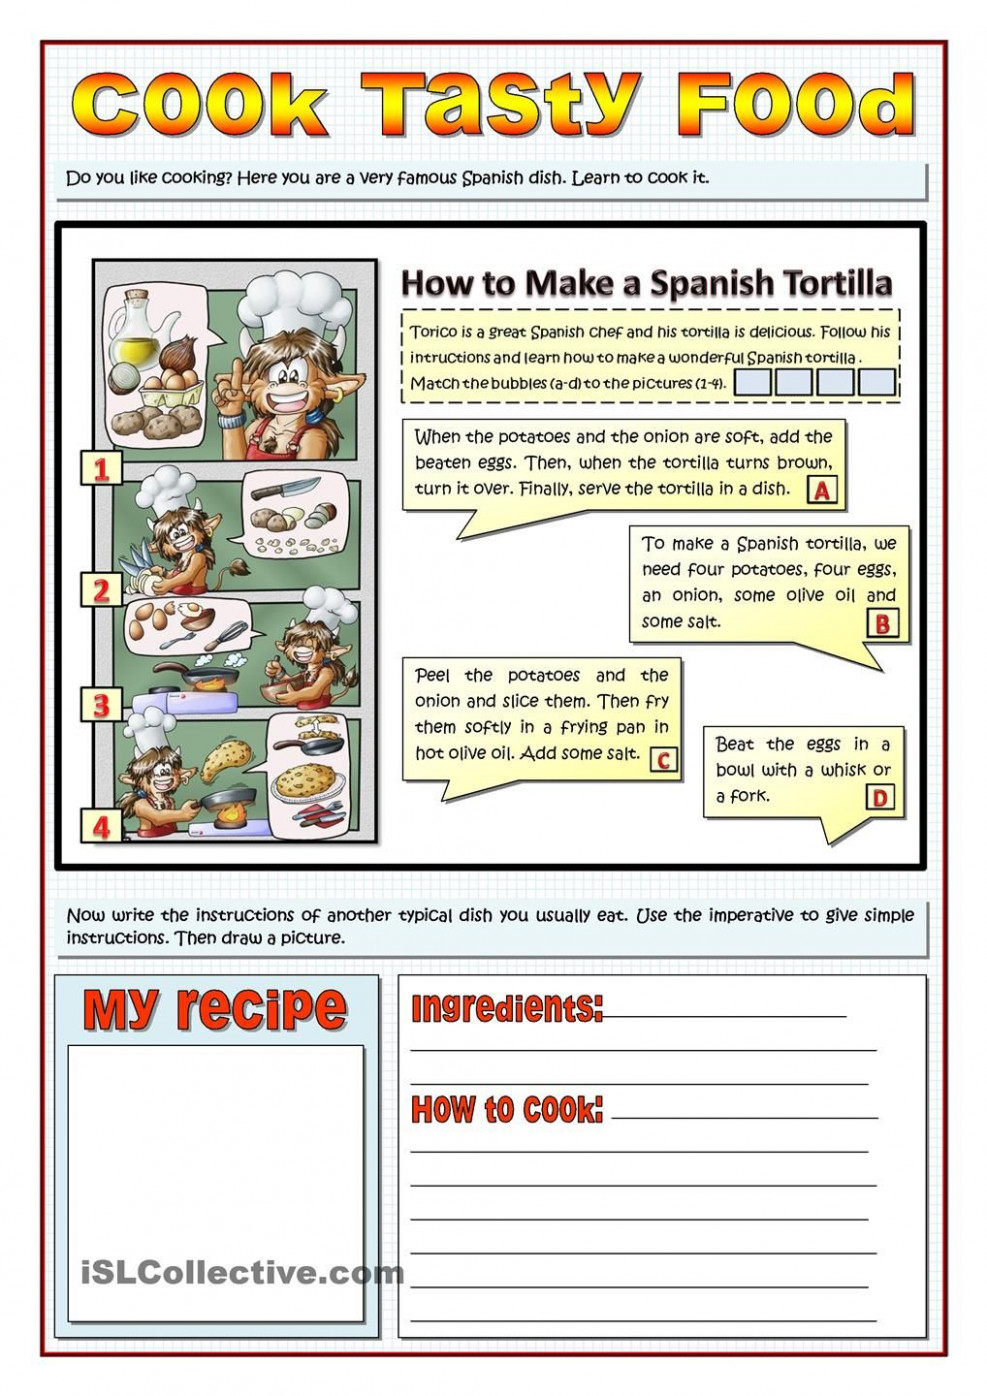 COOK TASTY FOOD - RECIPES AND IMPERATIVES | School ..